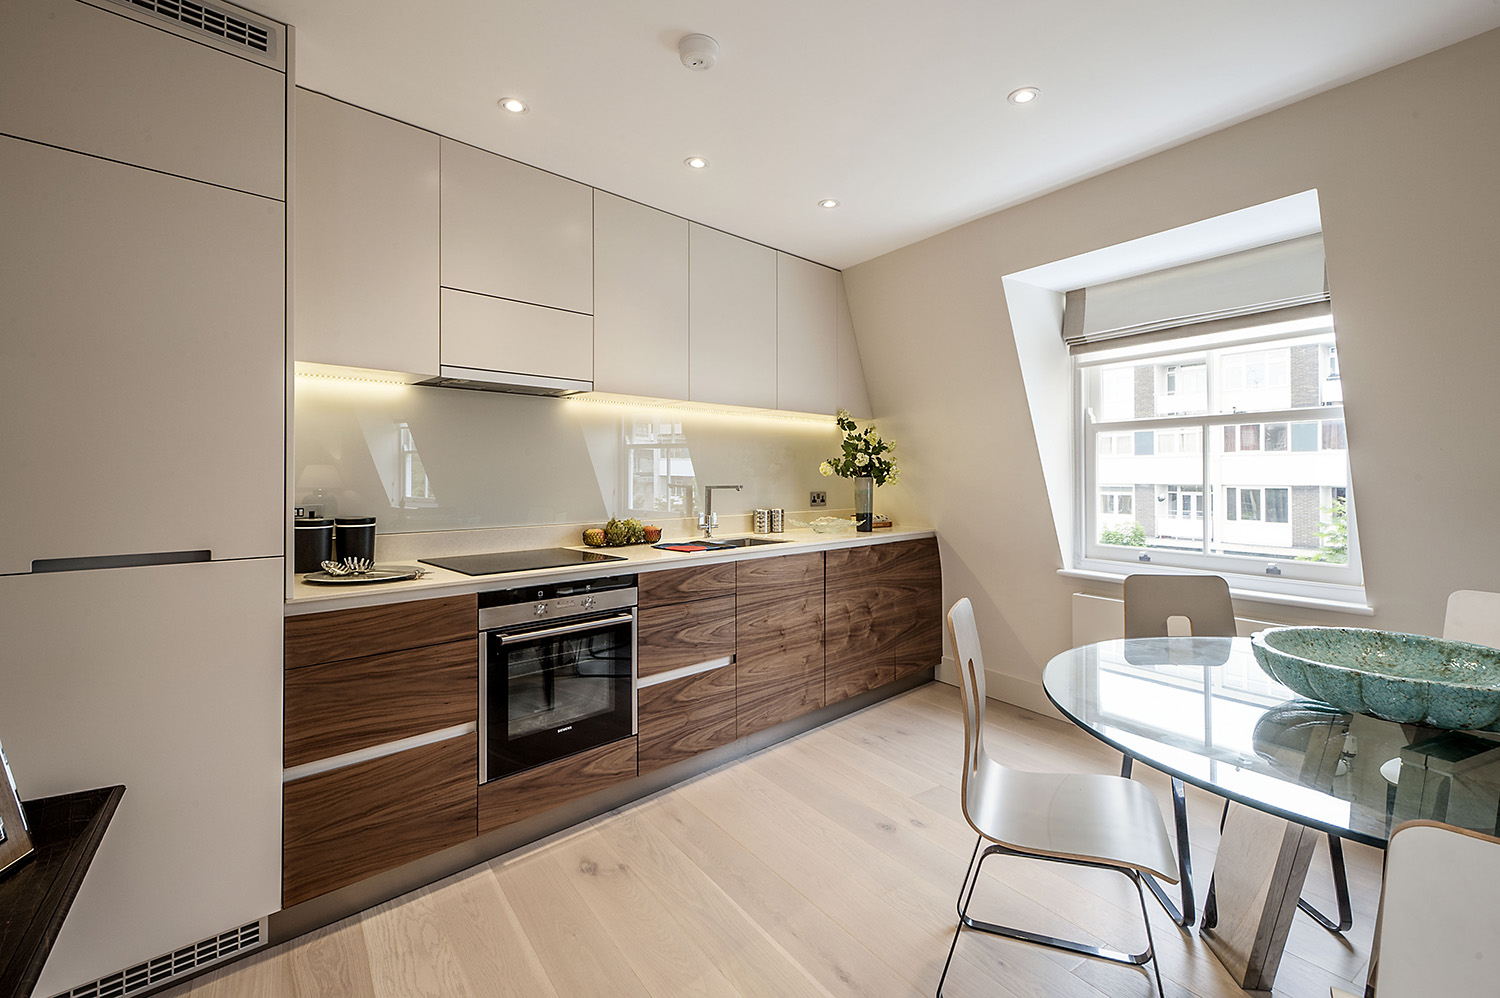 Design Box London - Interior Design - Notting Hill Development W11 - Kitchen